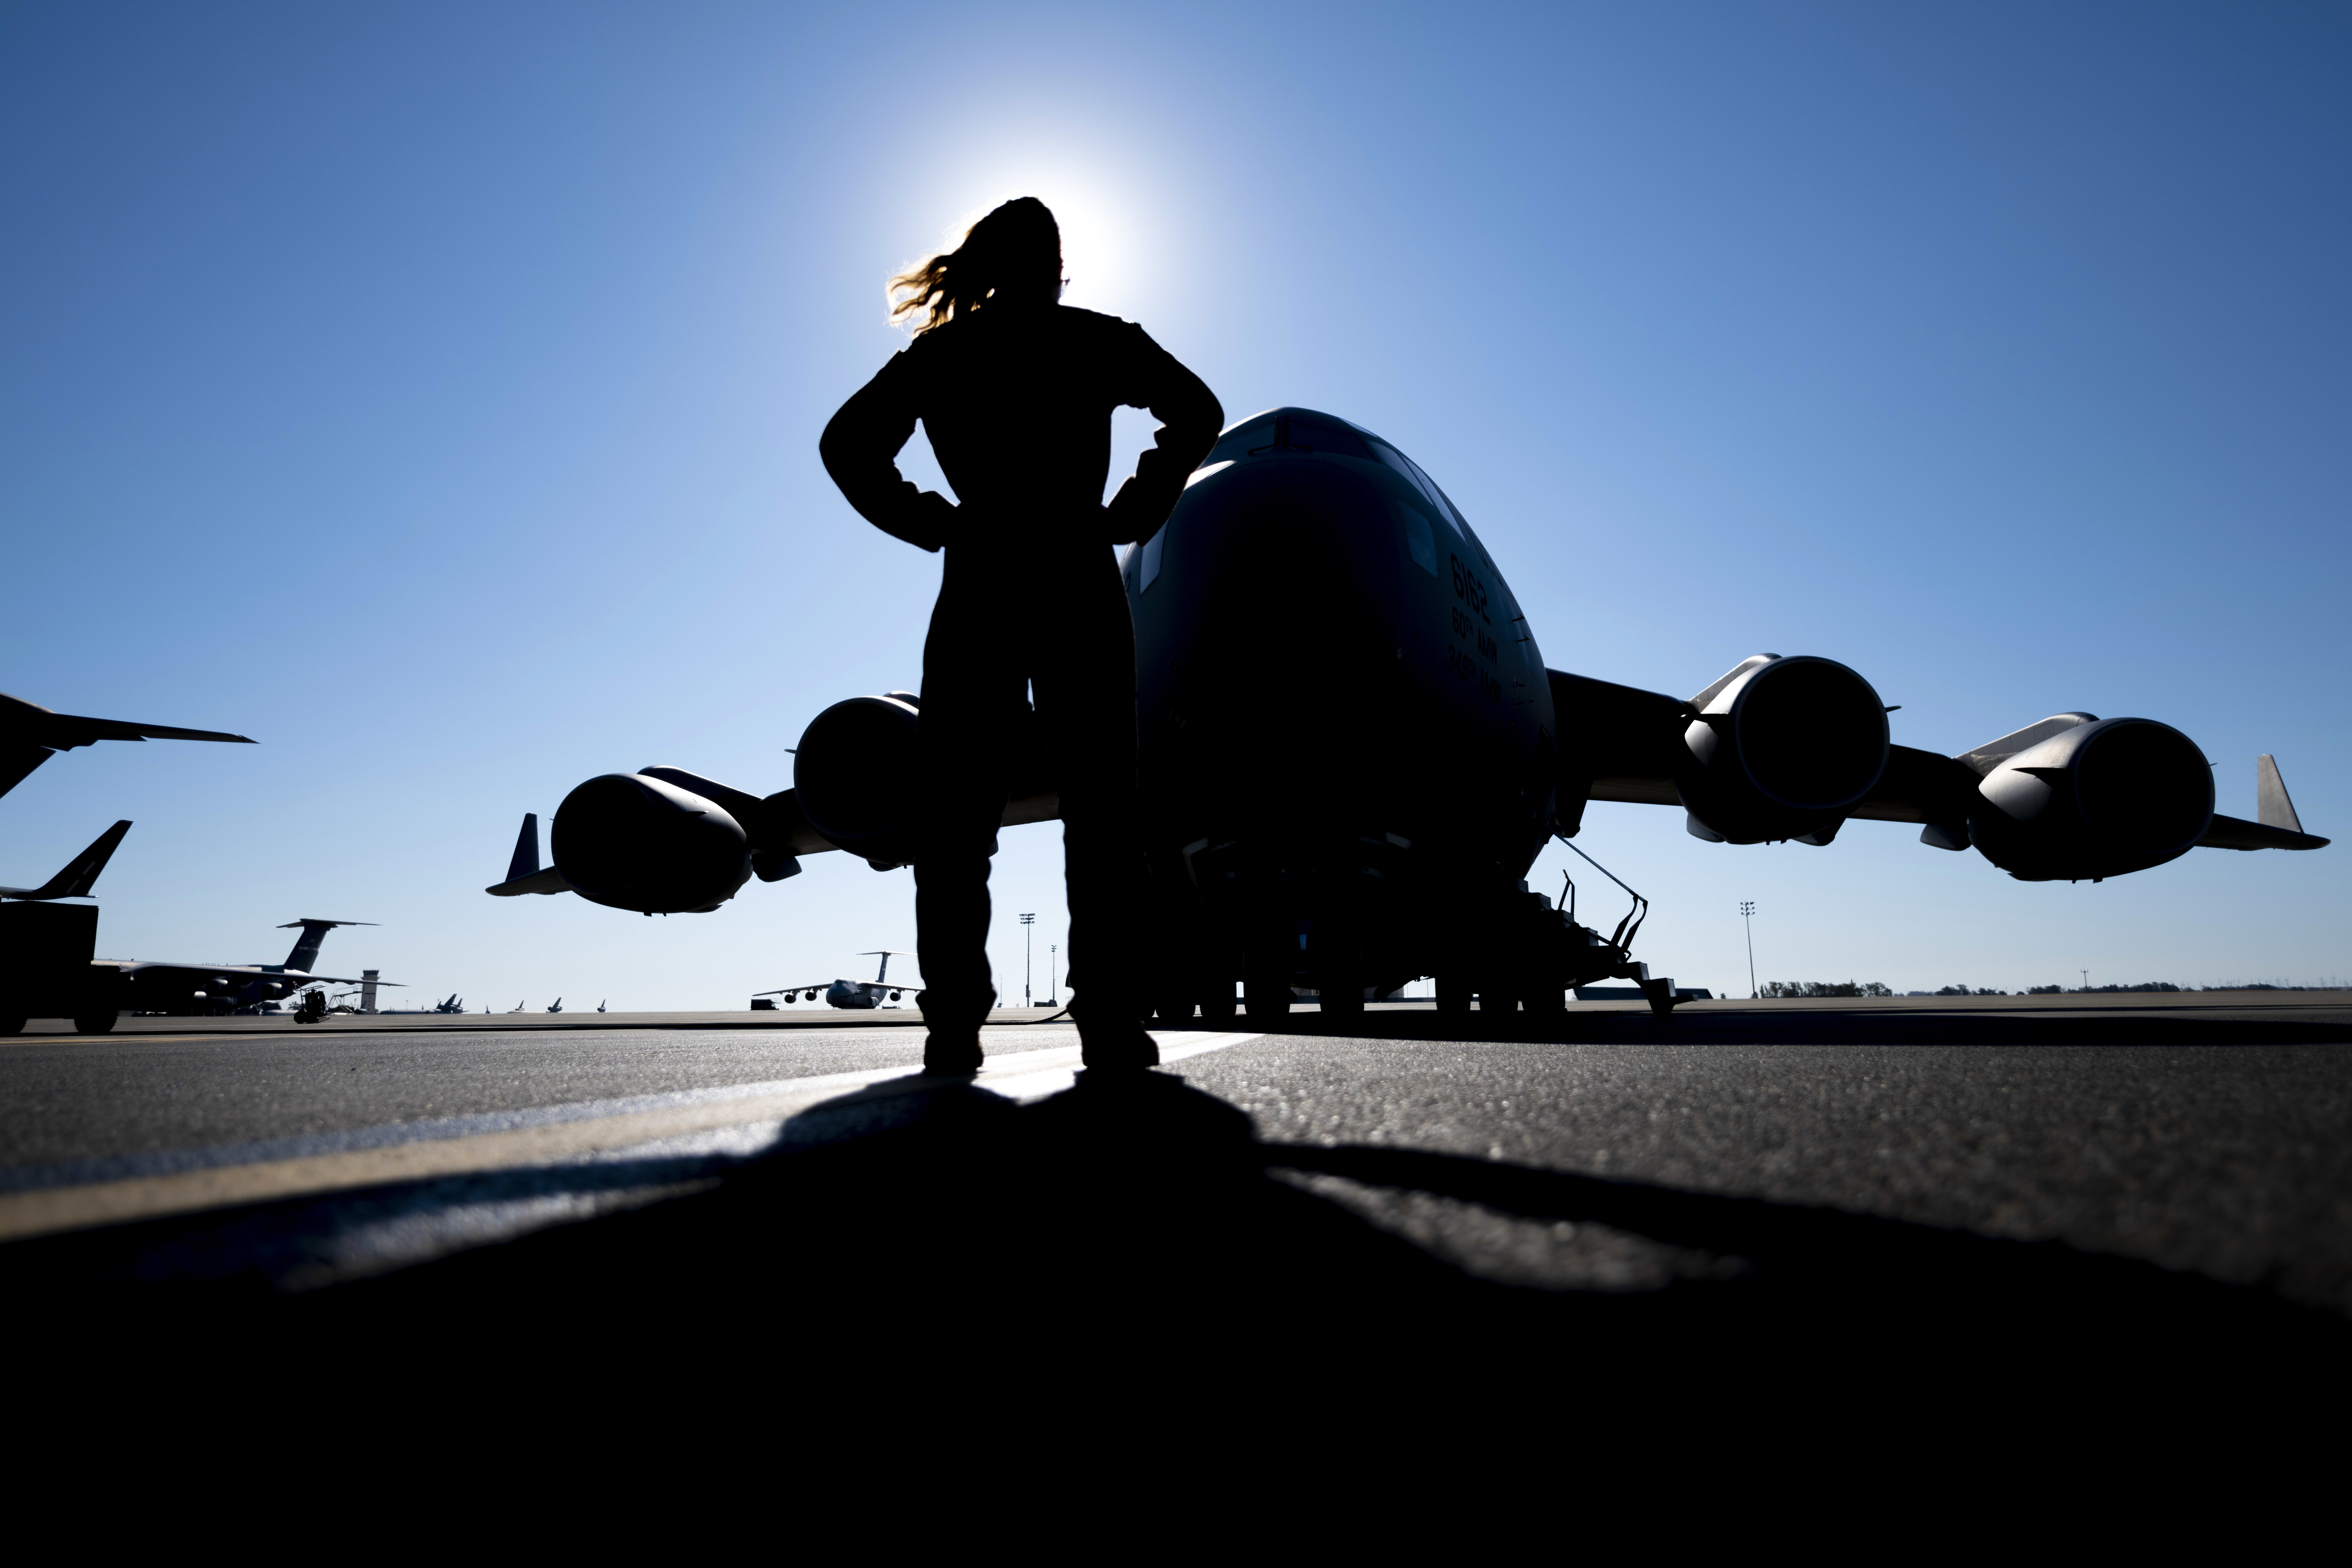 Senior Airman Sara Marinelli, a loadmaster with the 21st Airlift Squadron, stands in front of a C-17 Globemaster III July 6 at Travis Air Force Base, California. The 21st AS conducted a training mission that enabled qualification currency for seven crew members. (Senior Airman Jonathon Carnell/Air Force)